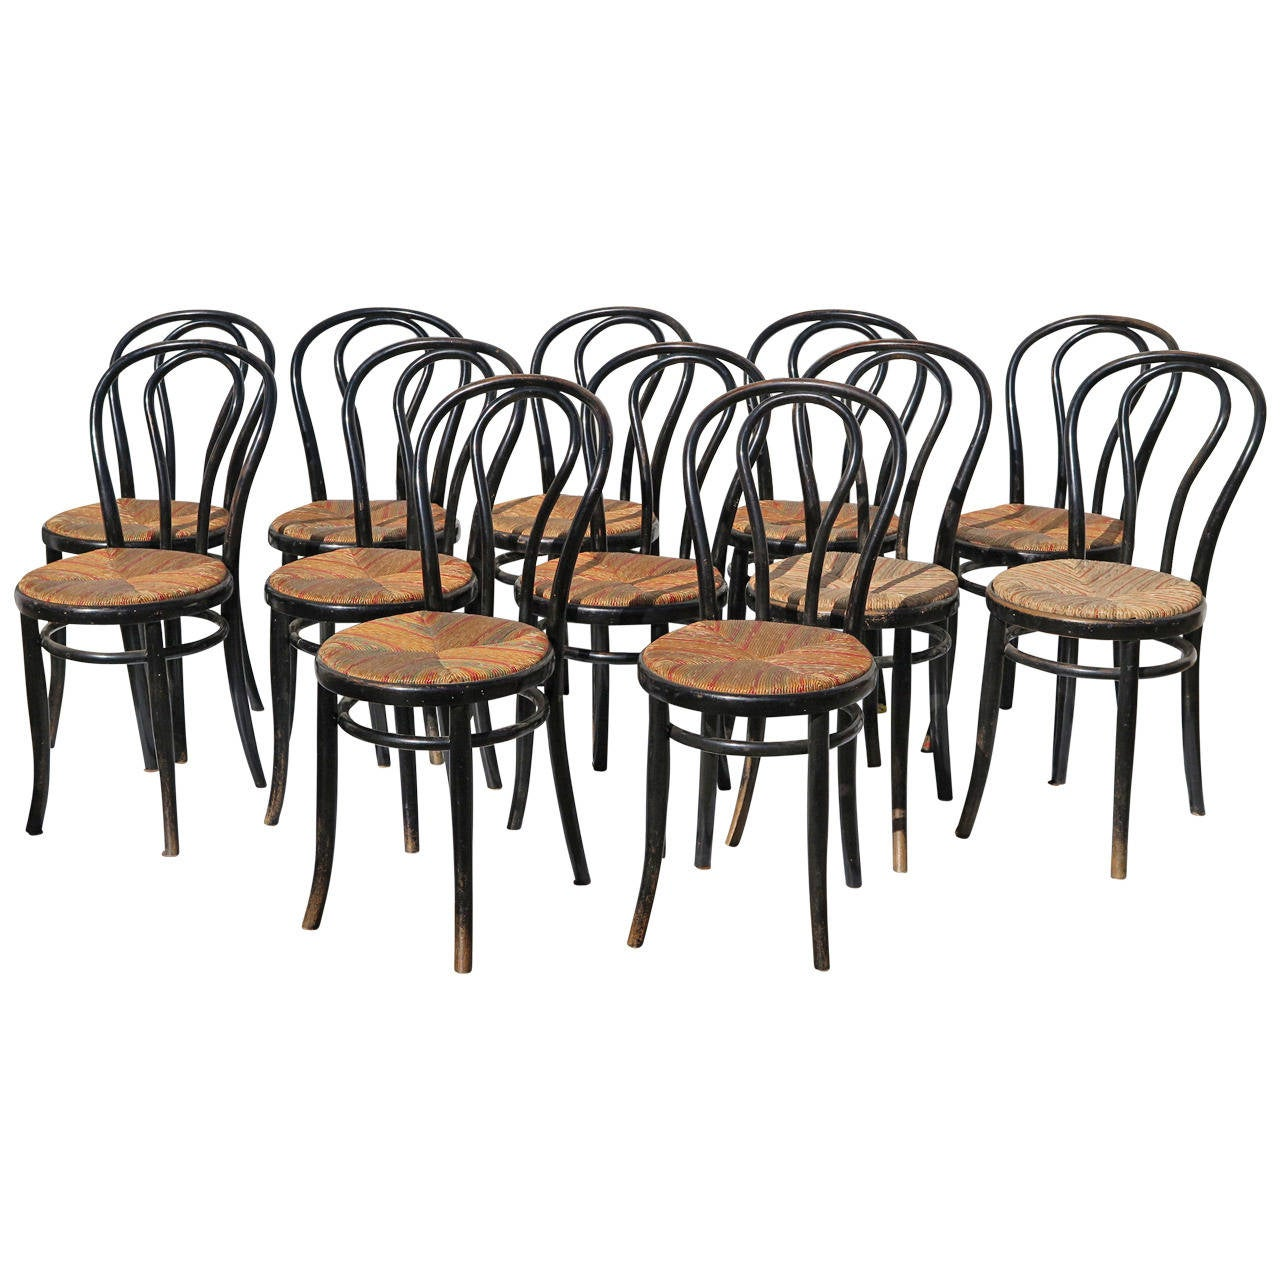 Bistro Chair French Bistro Chairs Six Available For Sale At 1stdibs